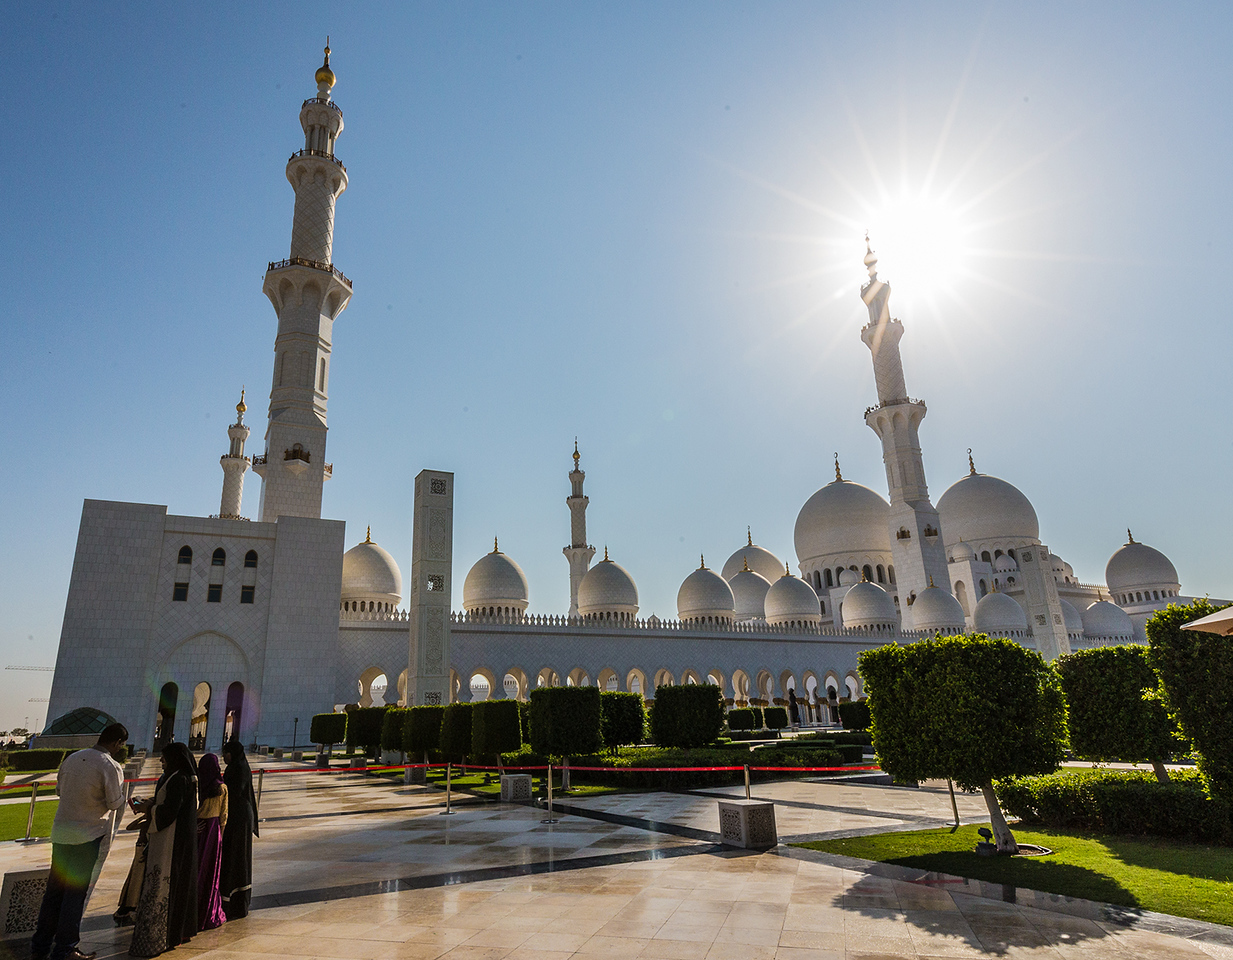 Abu Dhabi's Grand Mosque